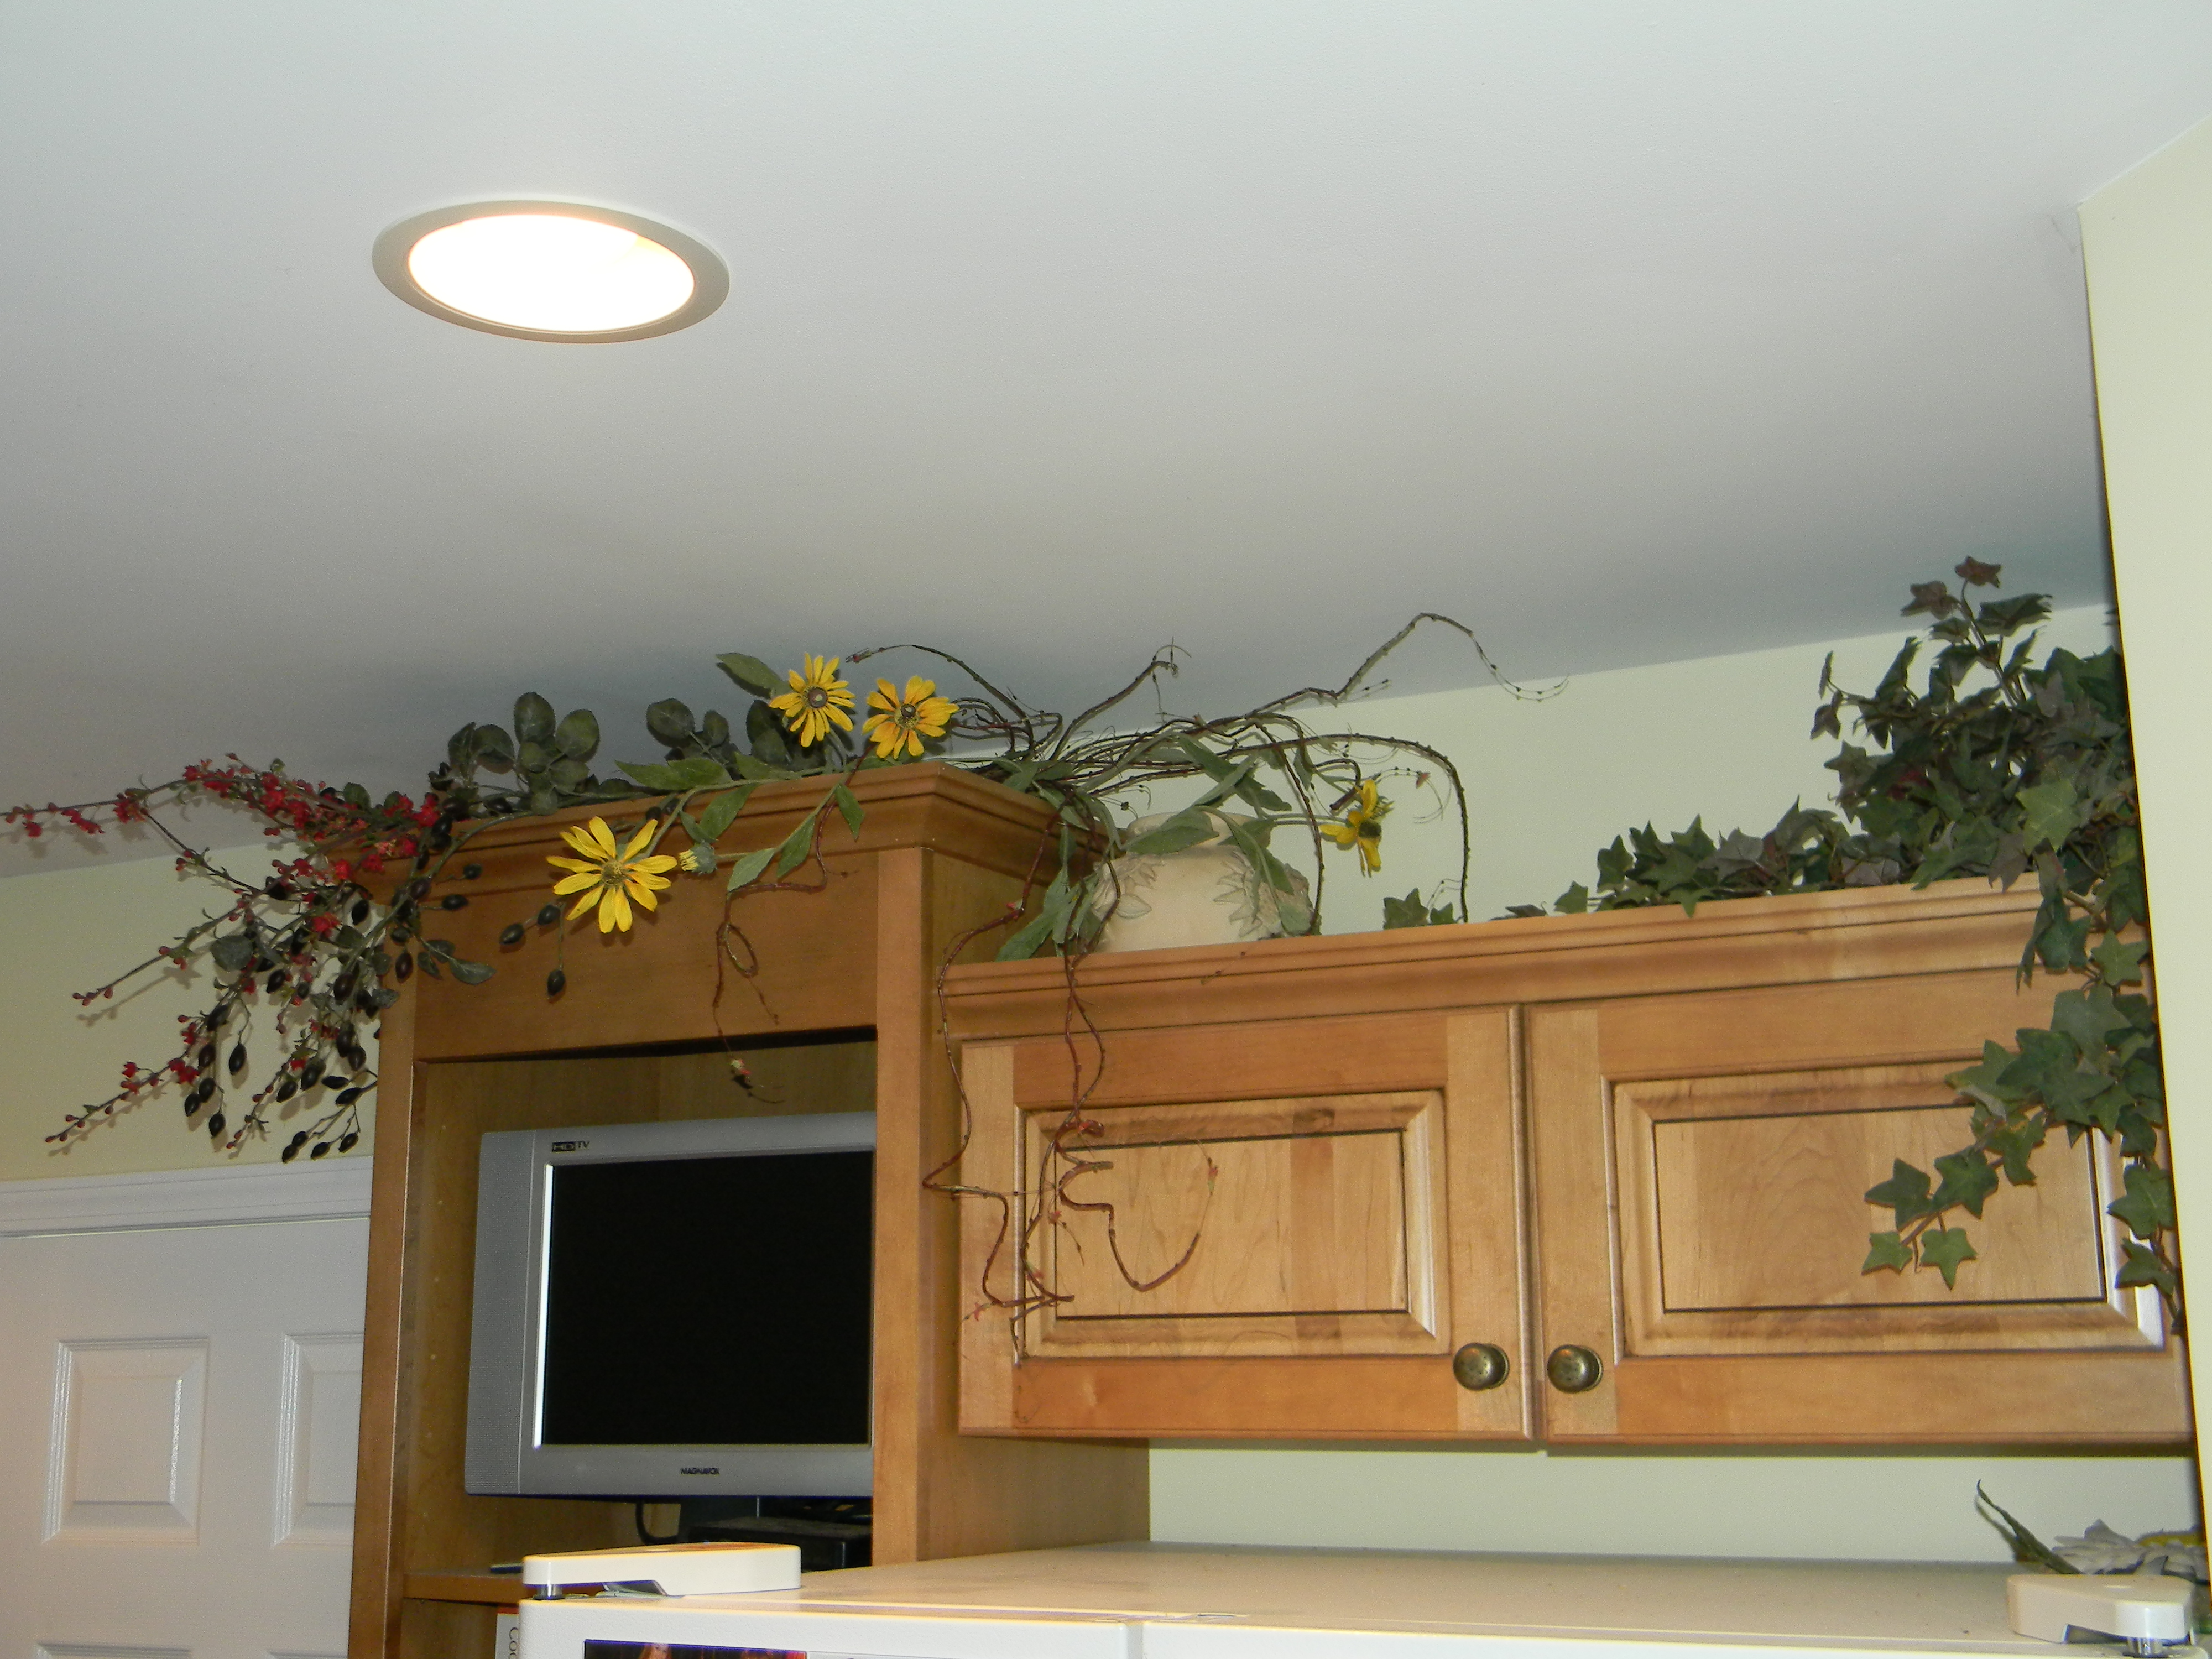 The Worst Mistake People Make When Placing Under Counter: Decorating Above Kitchen Cabinets, Above Fridgerator